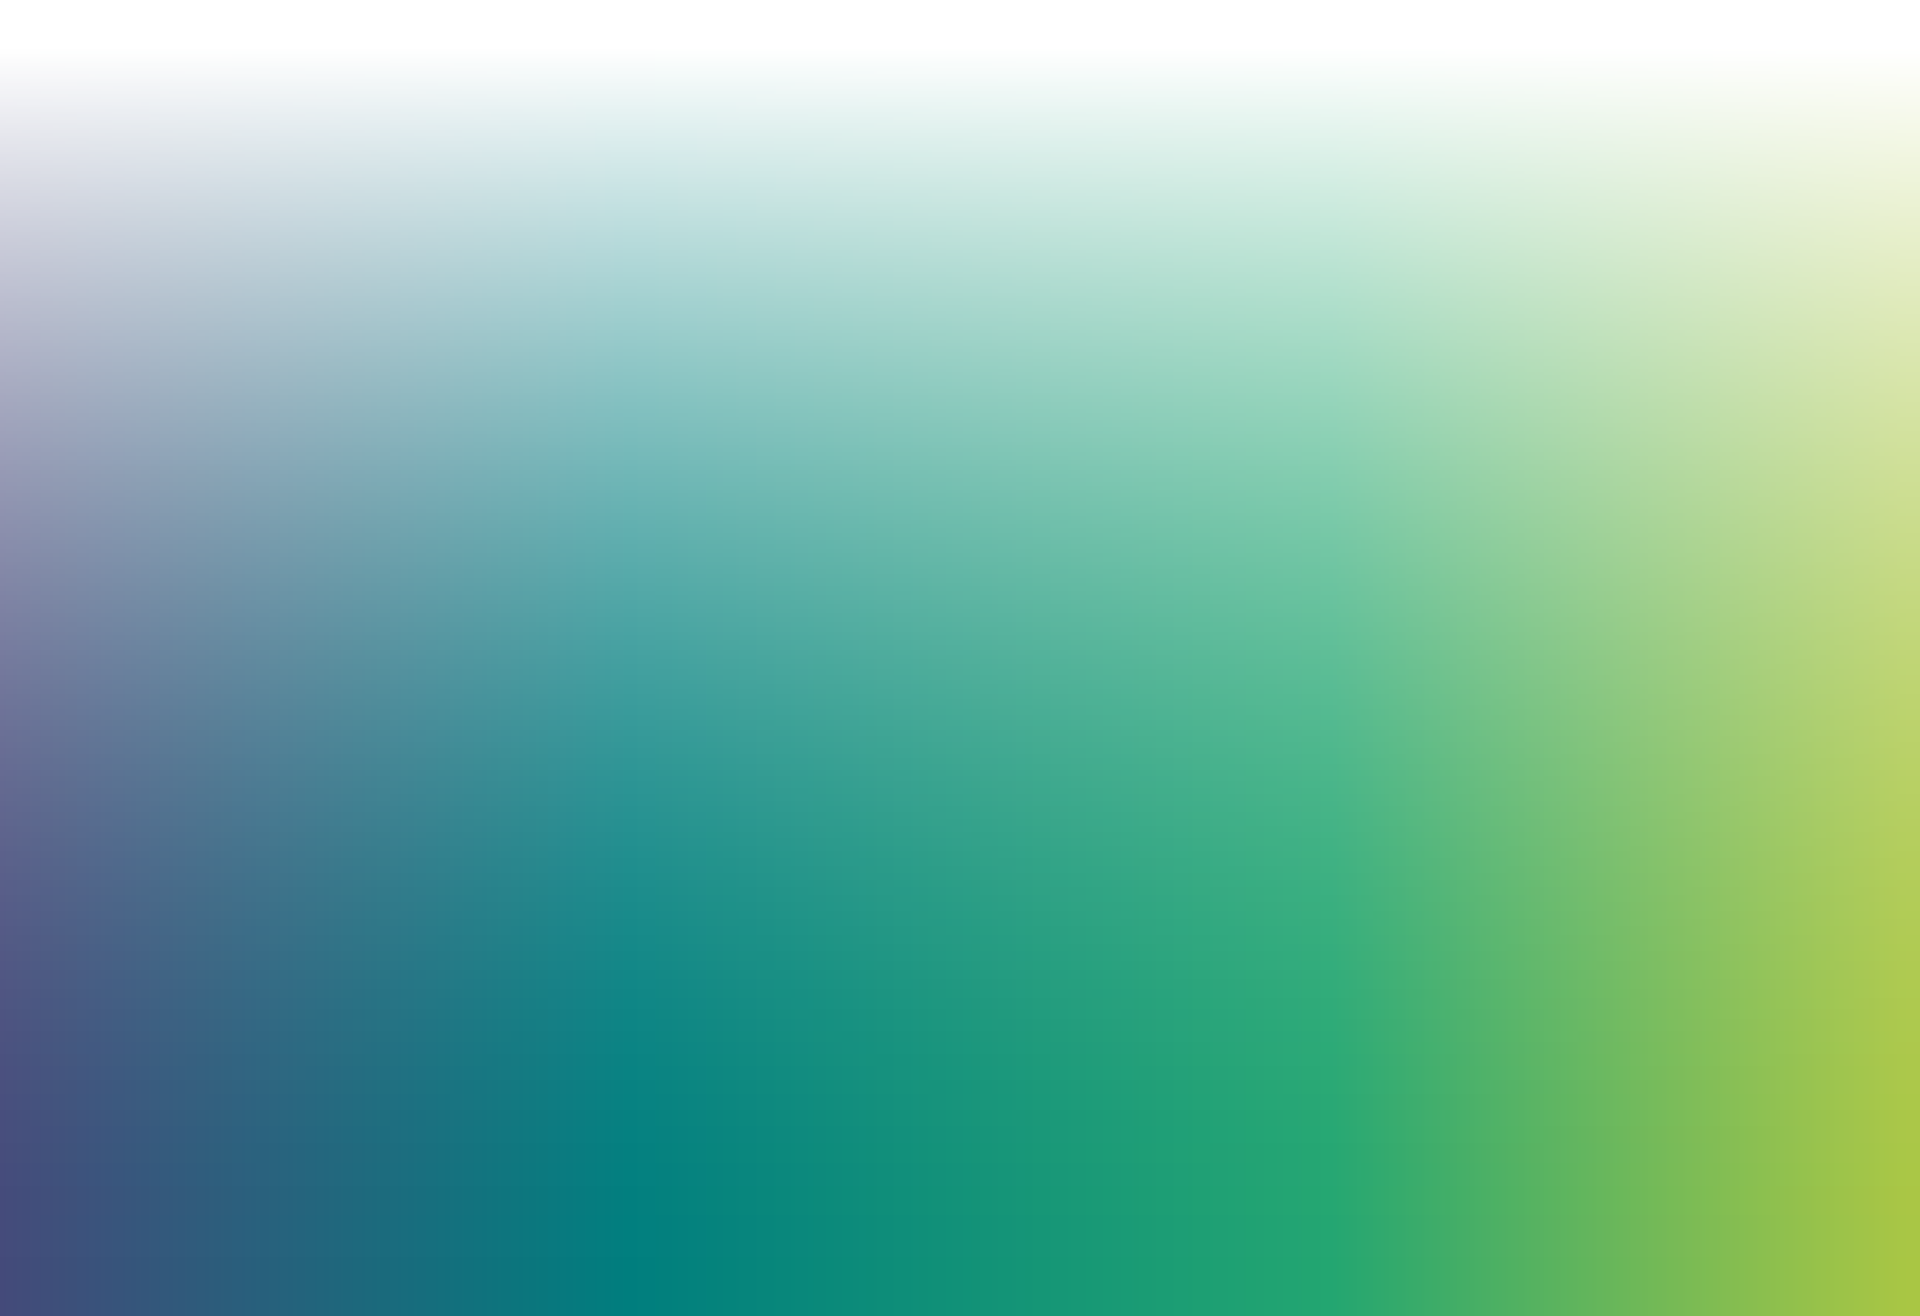 SiConsiulting_Website_Elements_Gradient